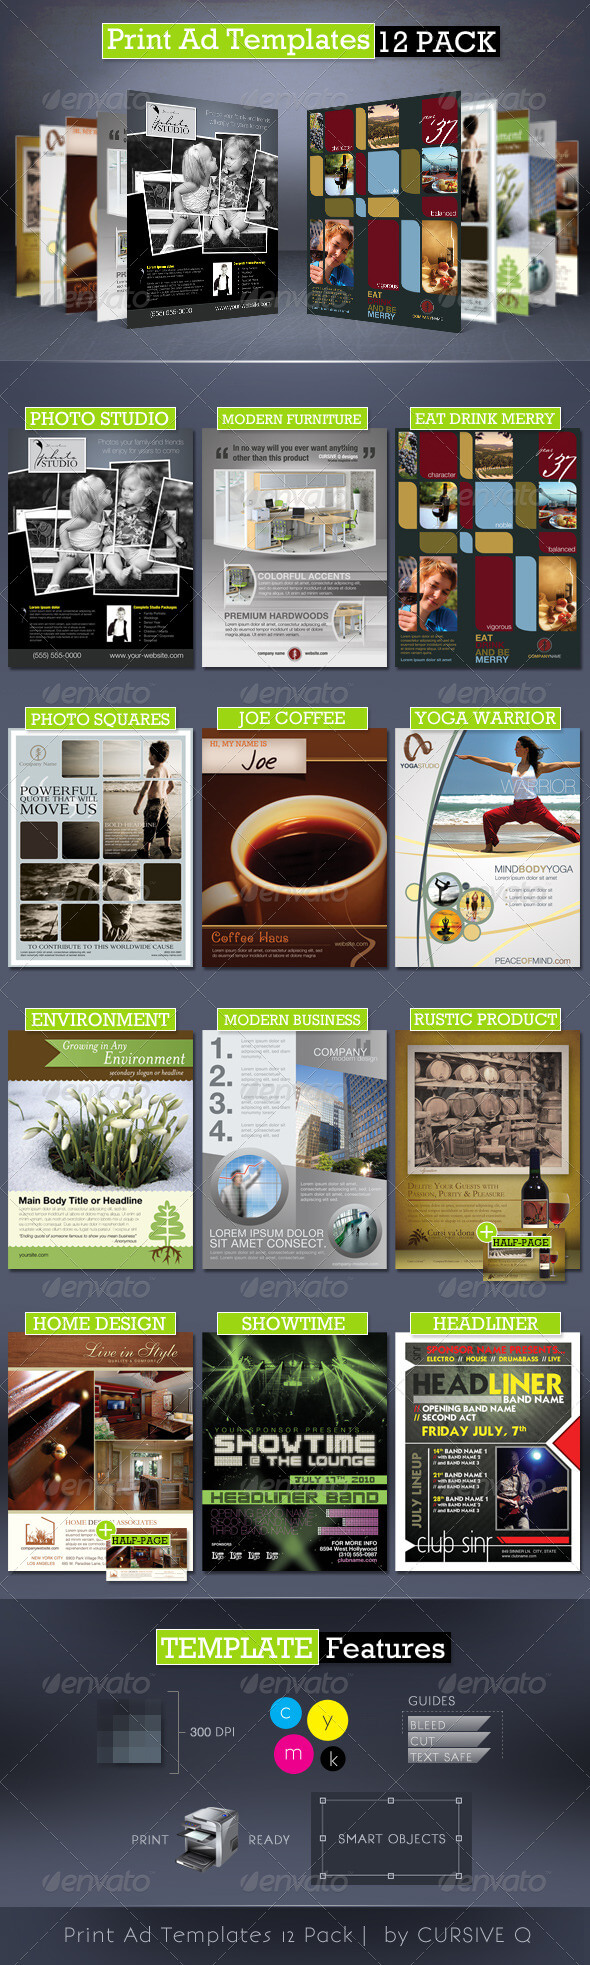 Print Ad Template Graphics, Designs & Templates Intended For Magazine Ad Template Word